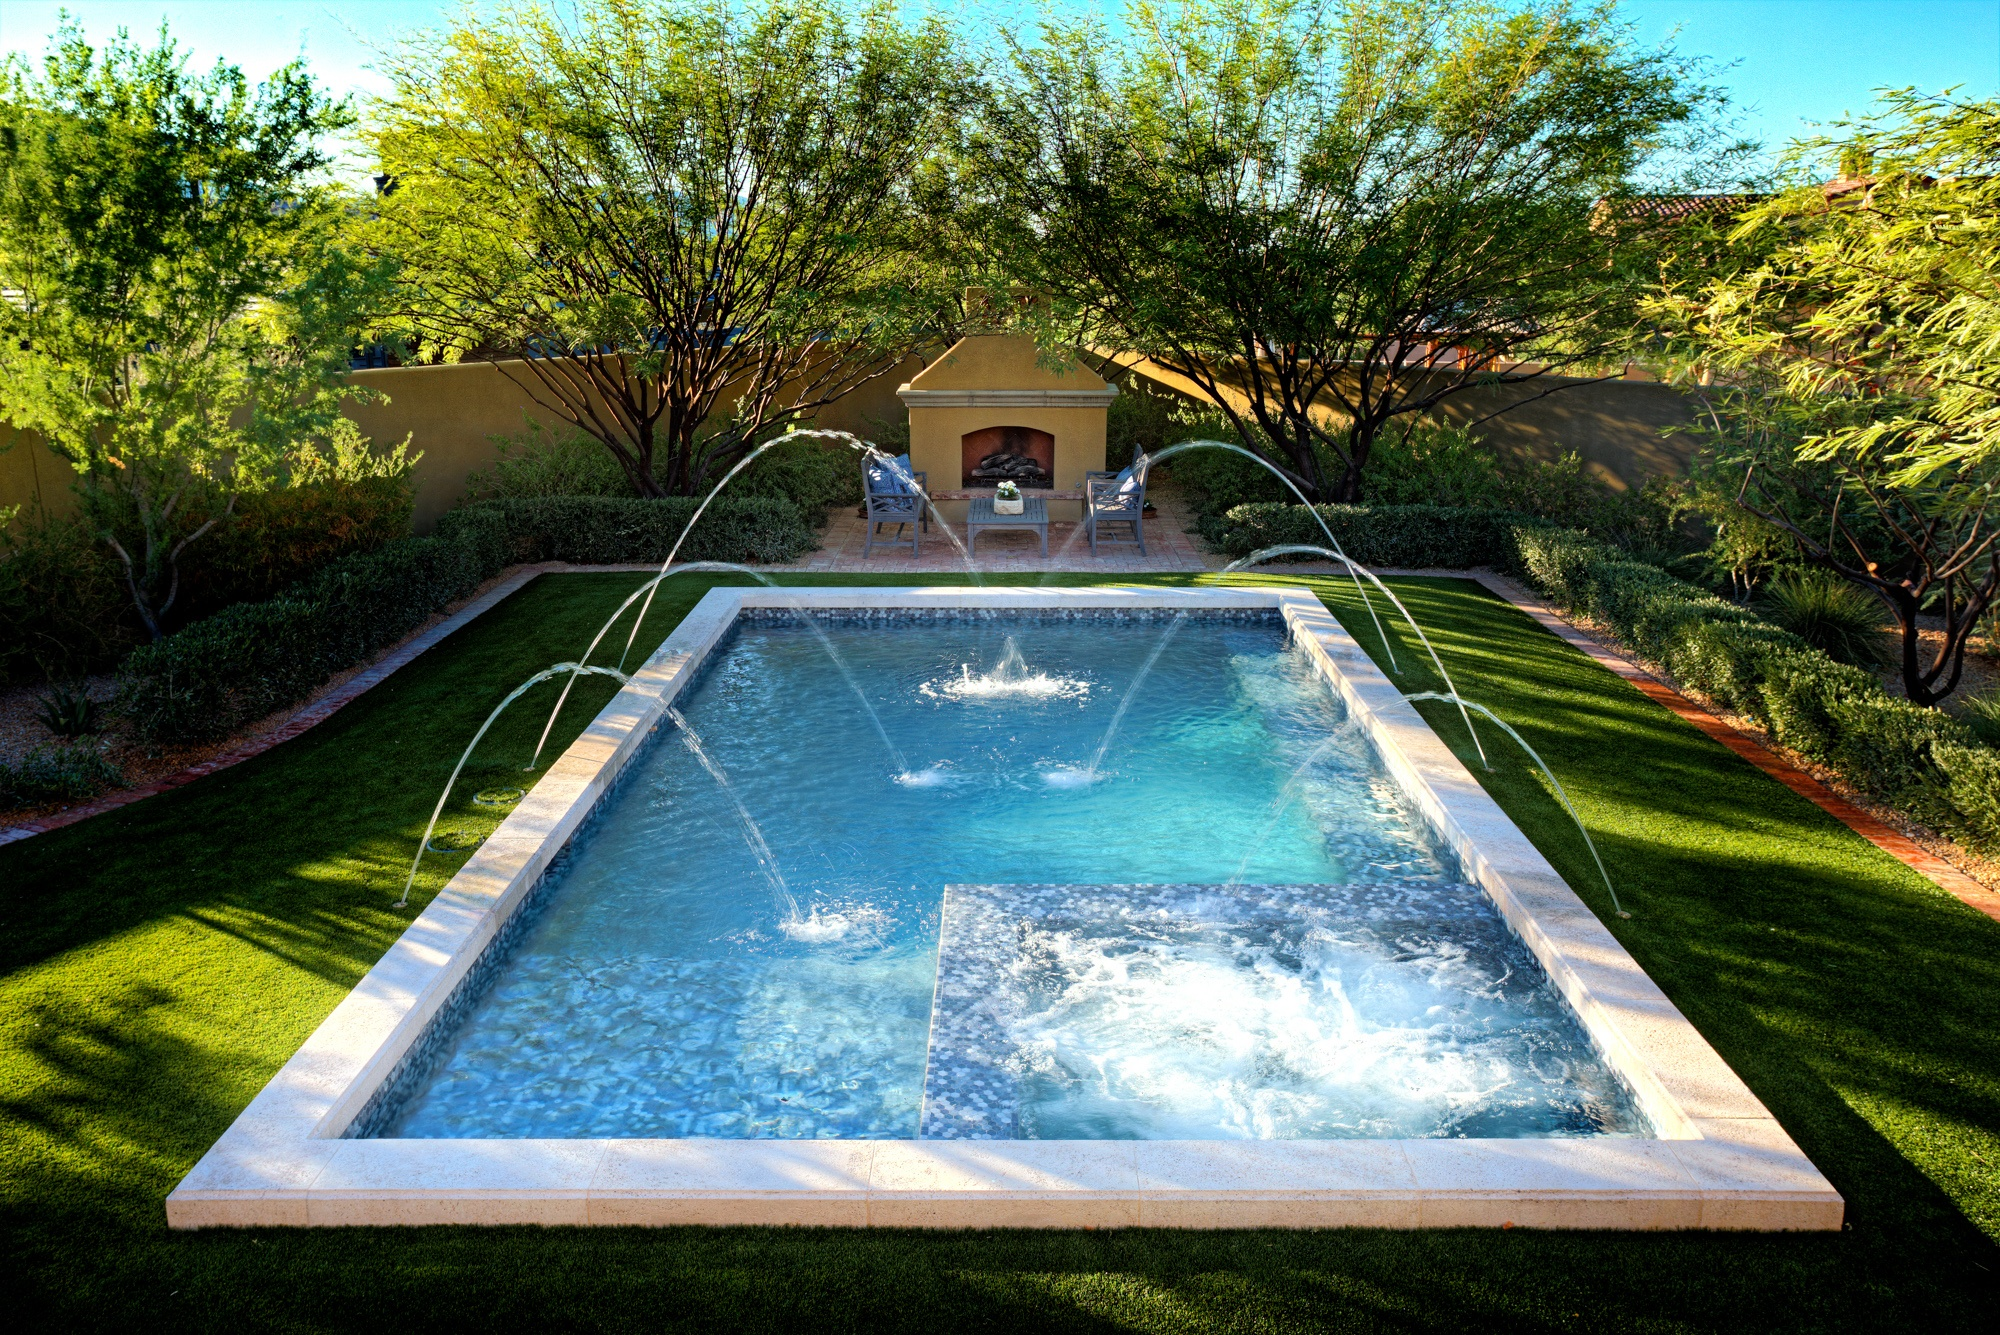 Pool Design Spotlight: Sparkling Serenity in Scottsdale, AZ